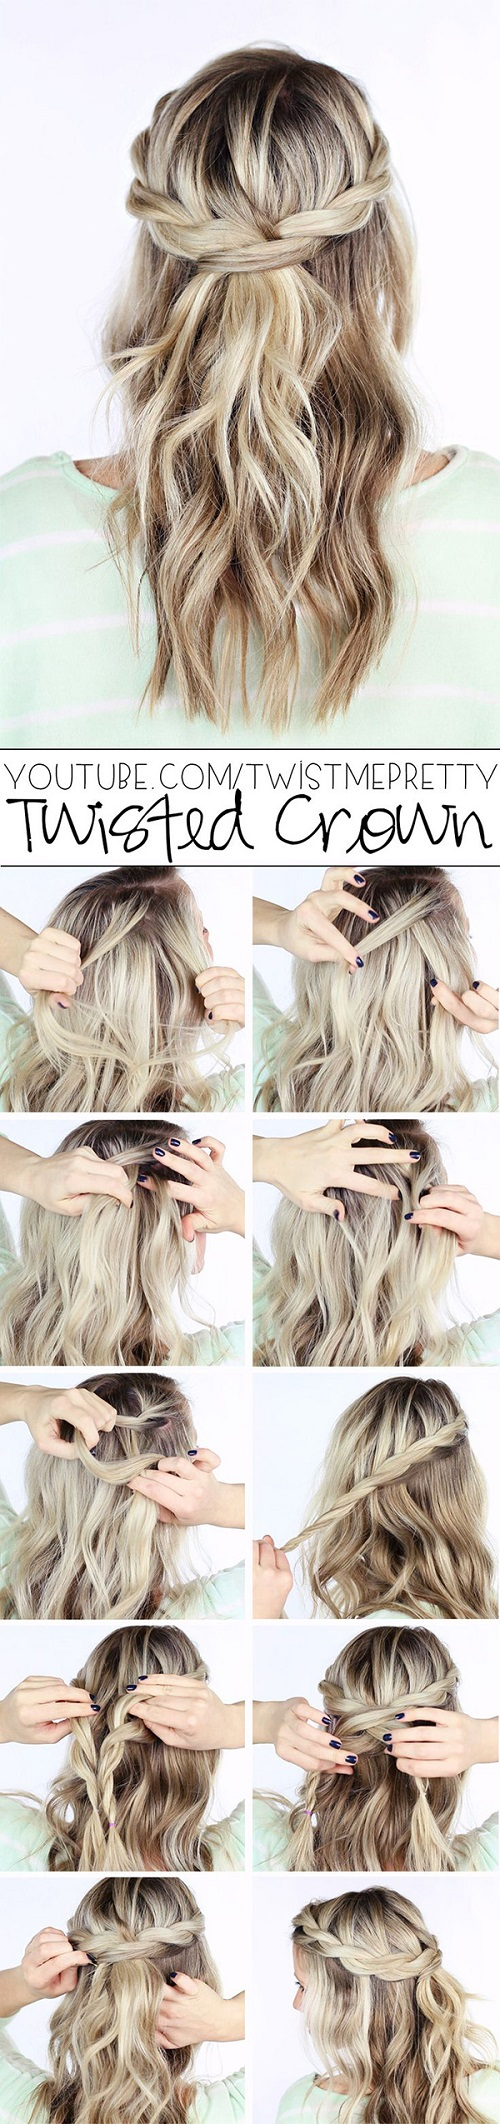 17 hair tutorials you can totally diy braided half updo tutorial solutioingenieria Image collections